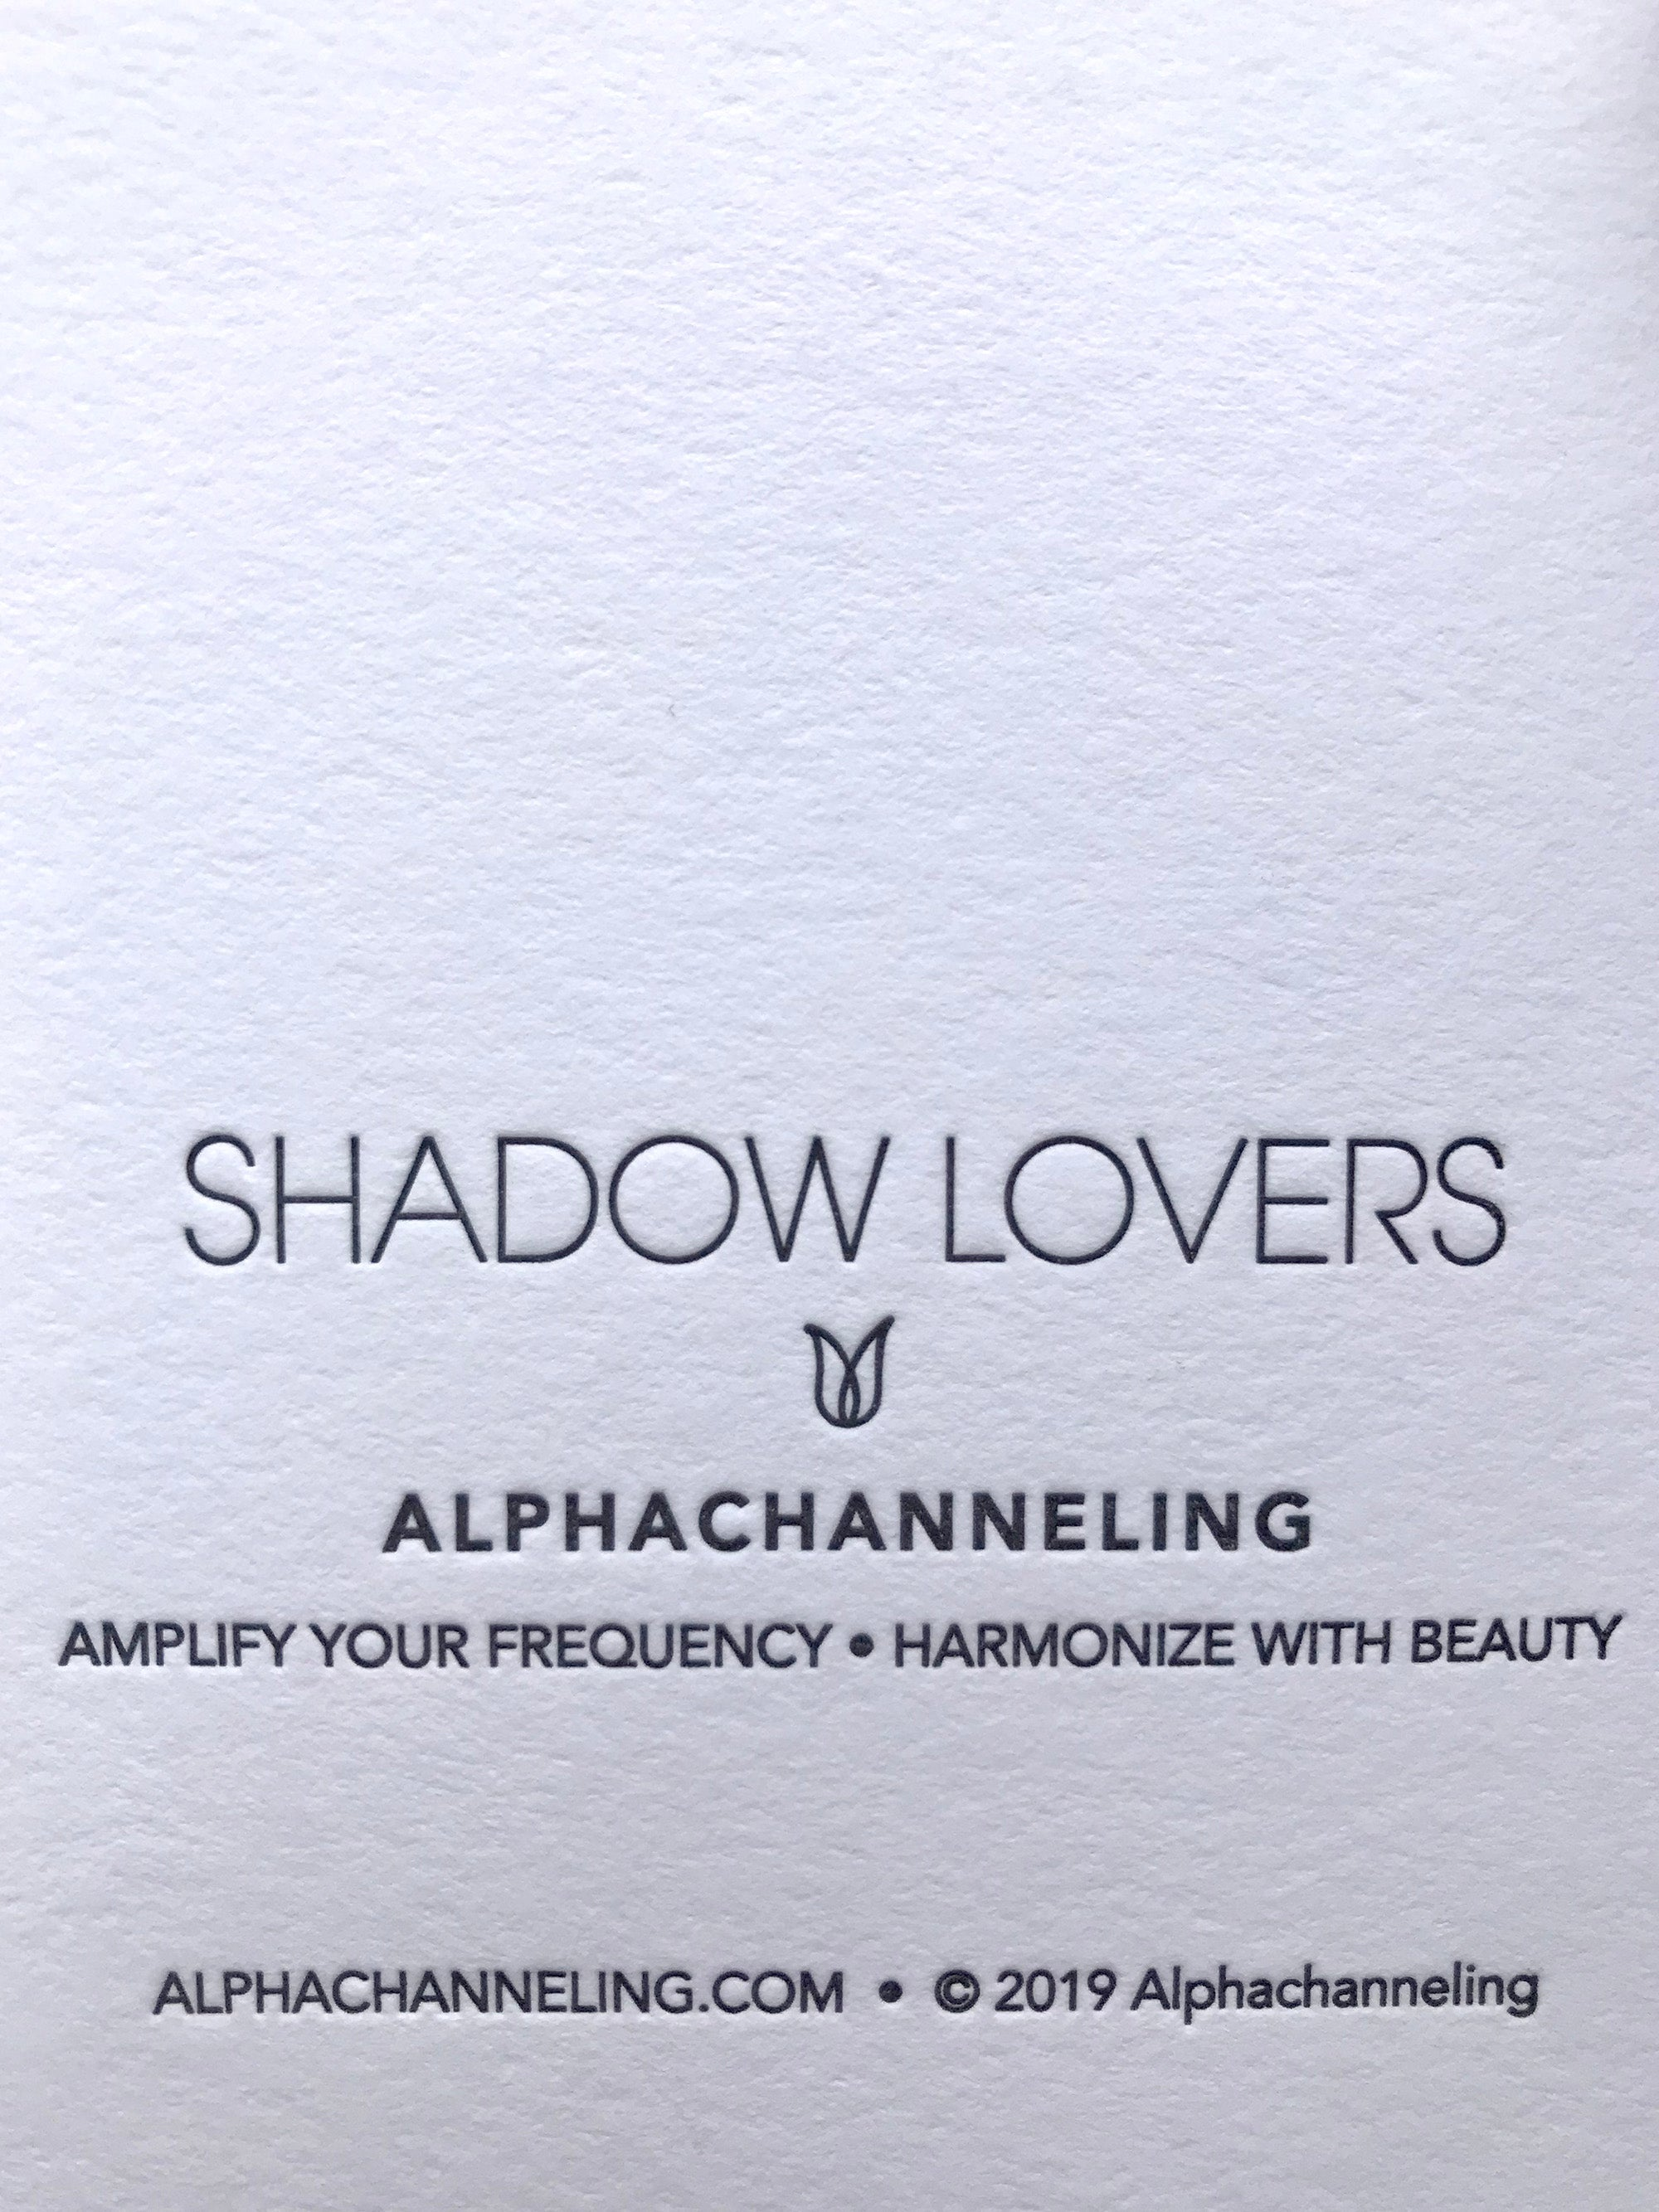 SHADOW LOVERS BOXED SET